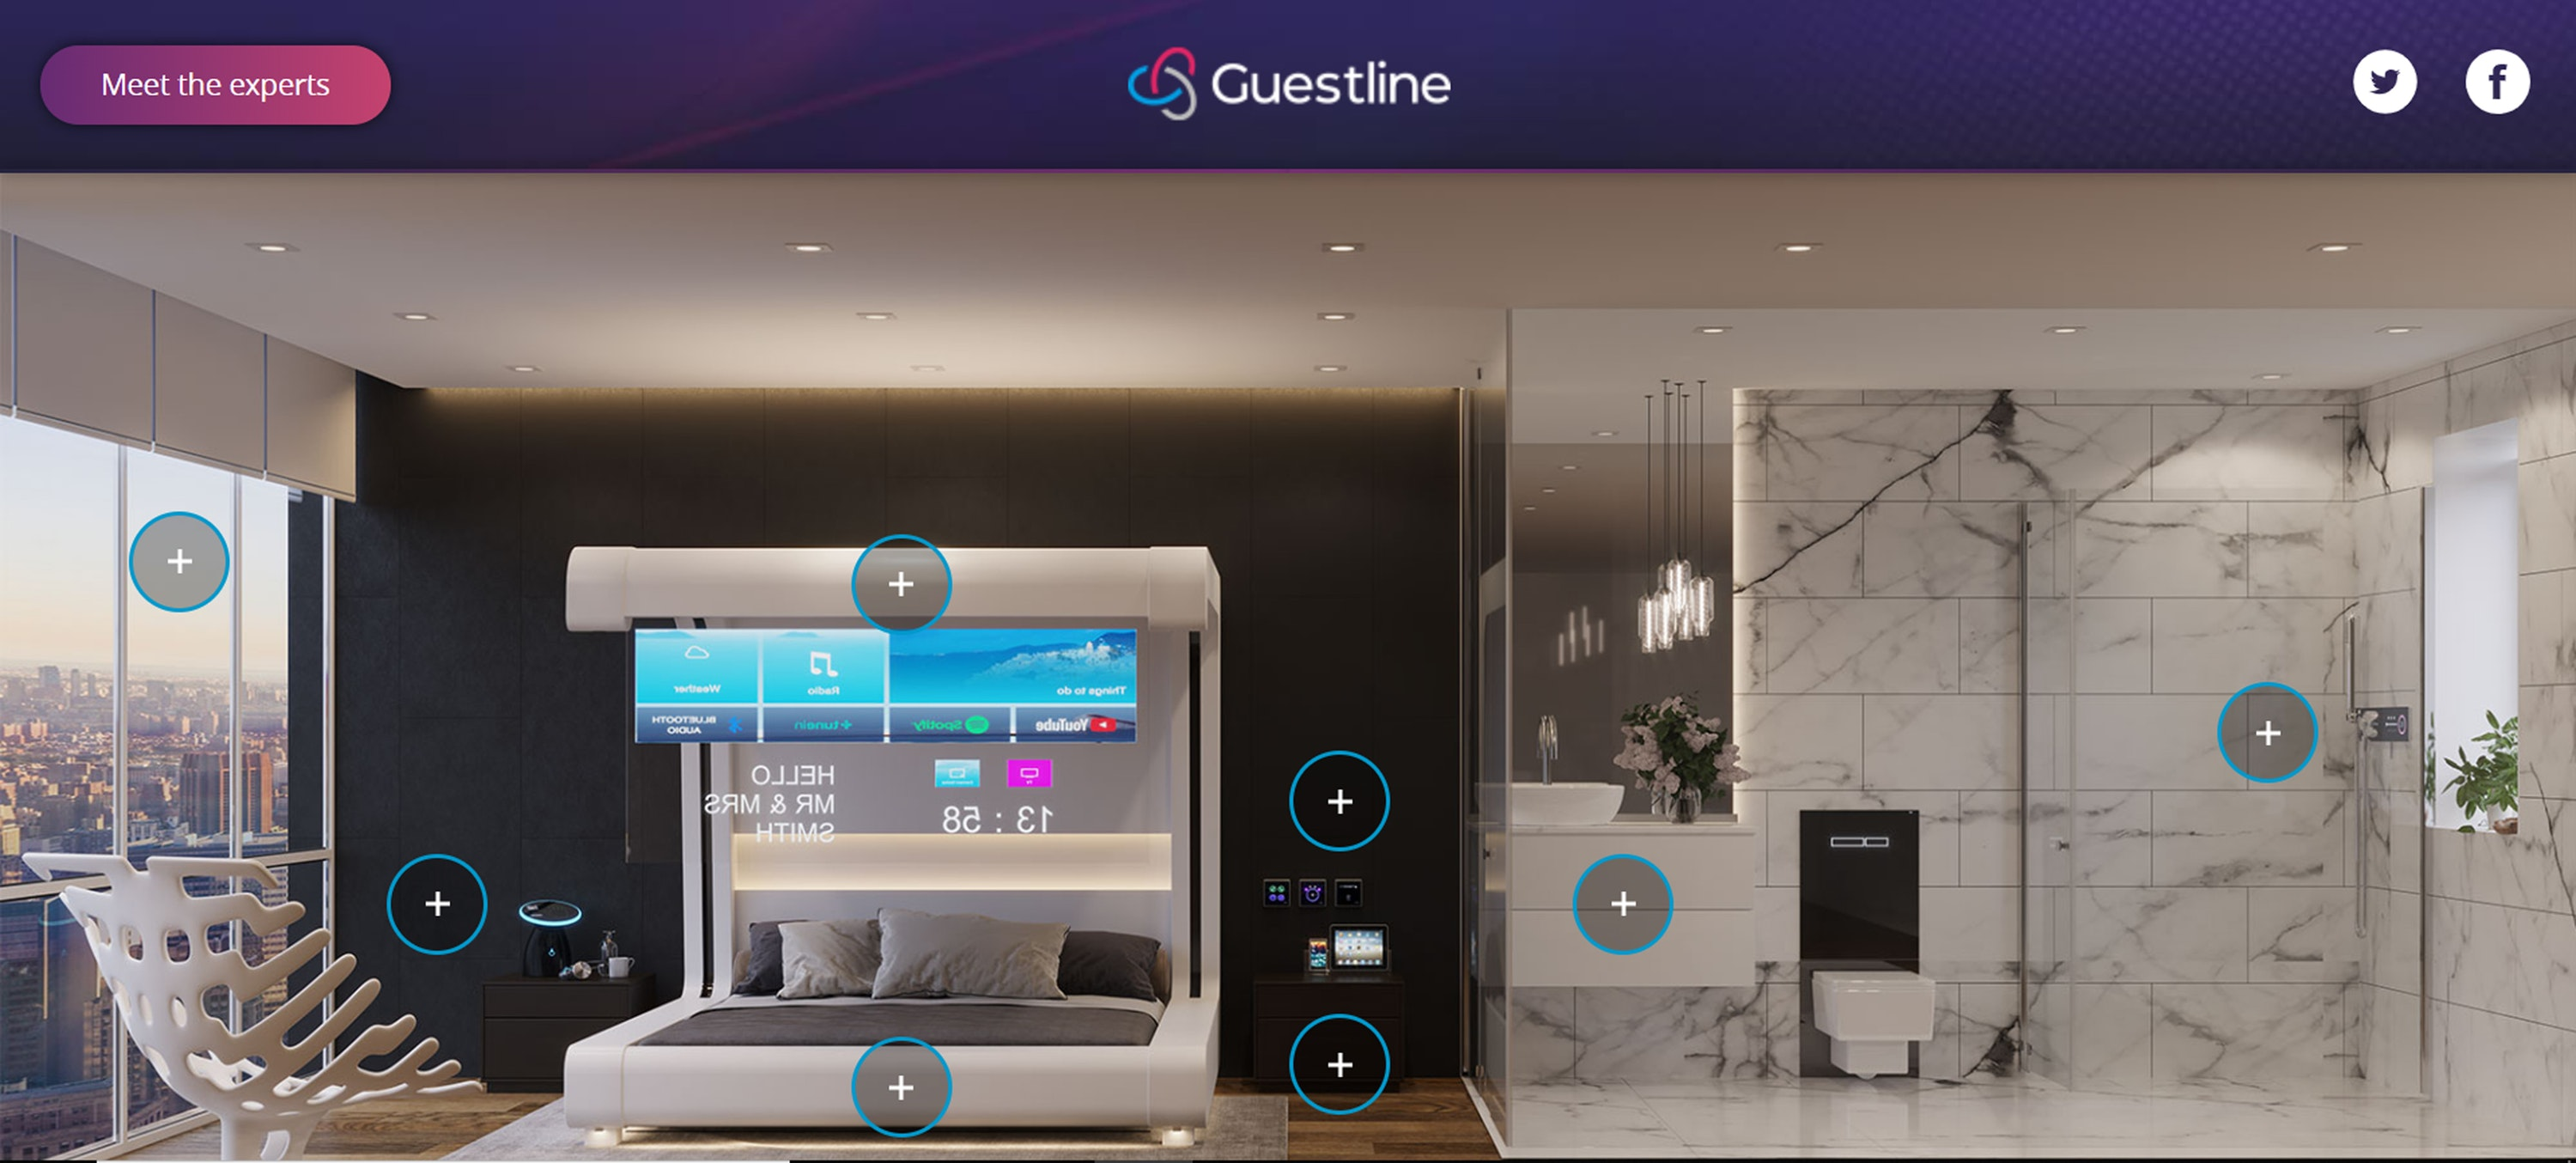 This is what hotel rooms could look like in the future